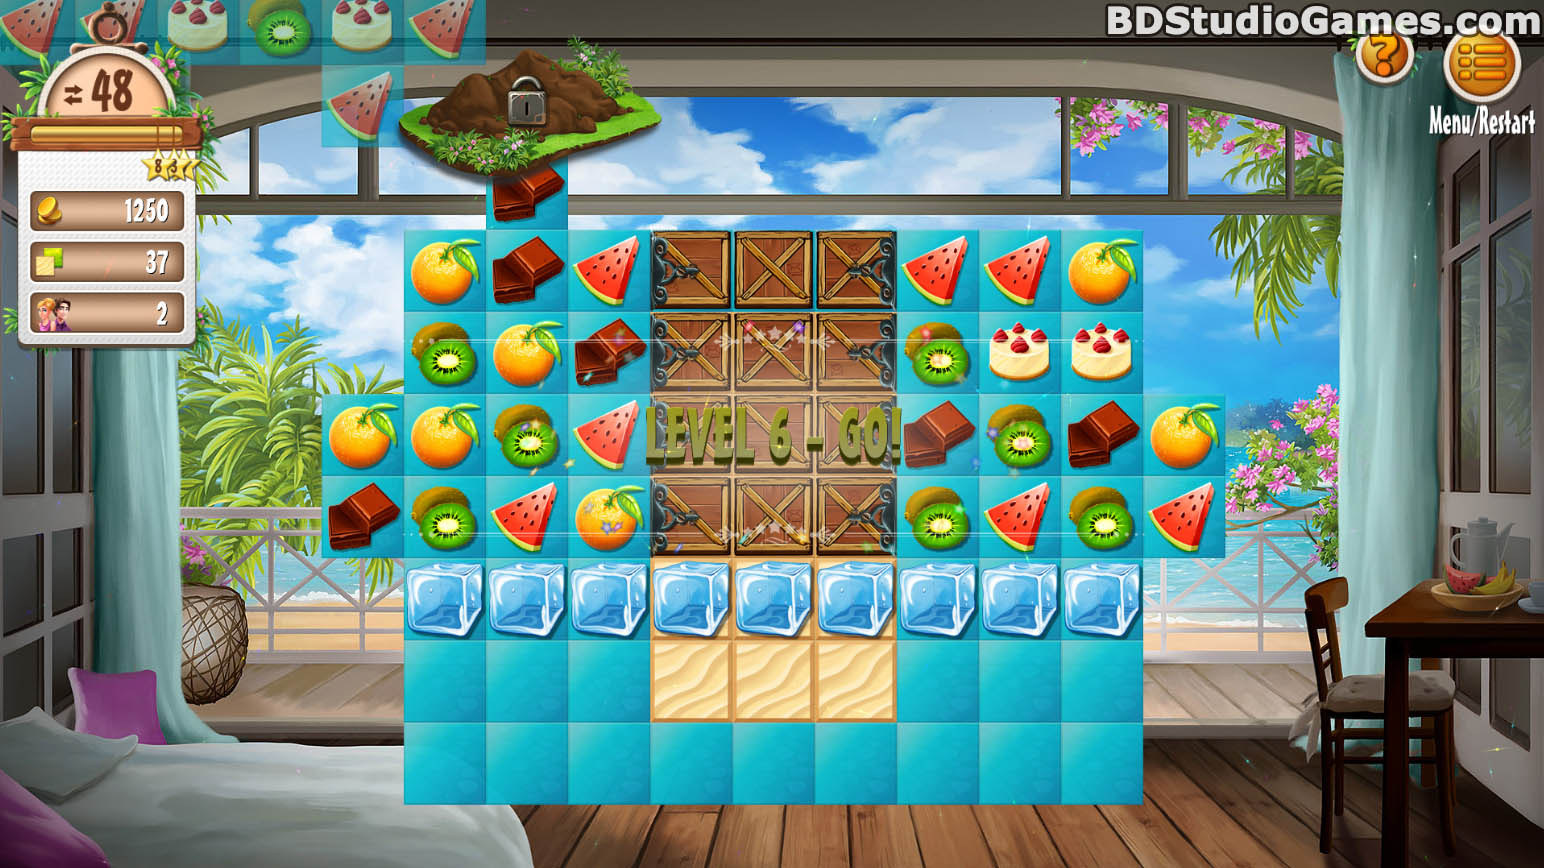 5 Star Miami Resort Trial Version Free Download Full Version Buy Now Screenshots 09